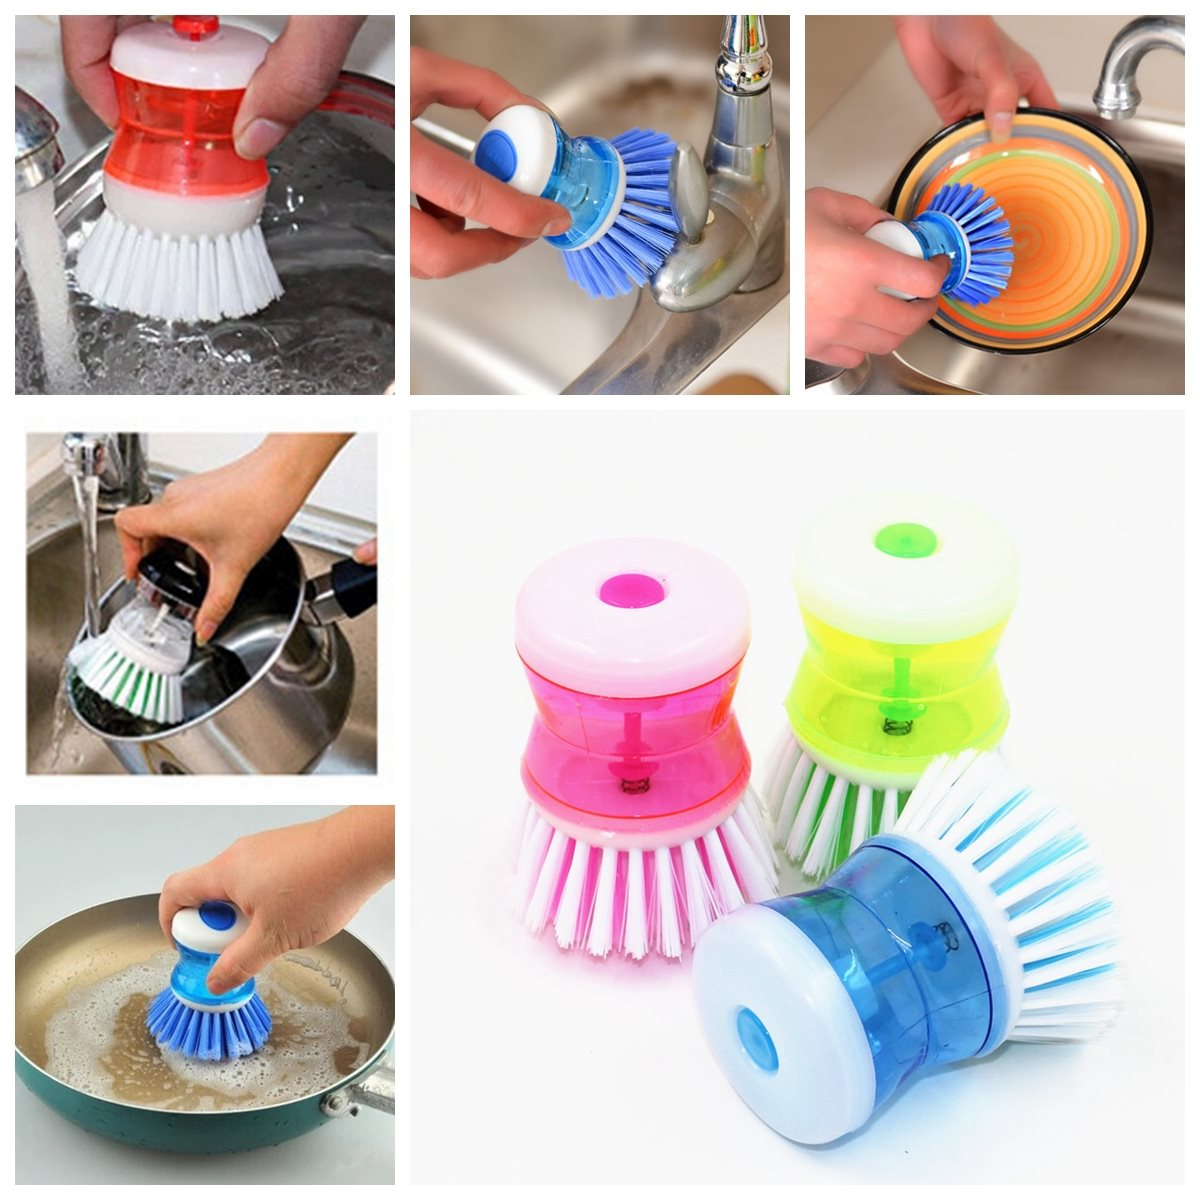 Brand New Good Promotion Kitchen Wash Tool Pot Pan Dish Bowl For Palm Brush Scrubber Cleaning Cleaner Plastic For Cleaning(China (Mainland))